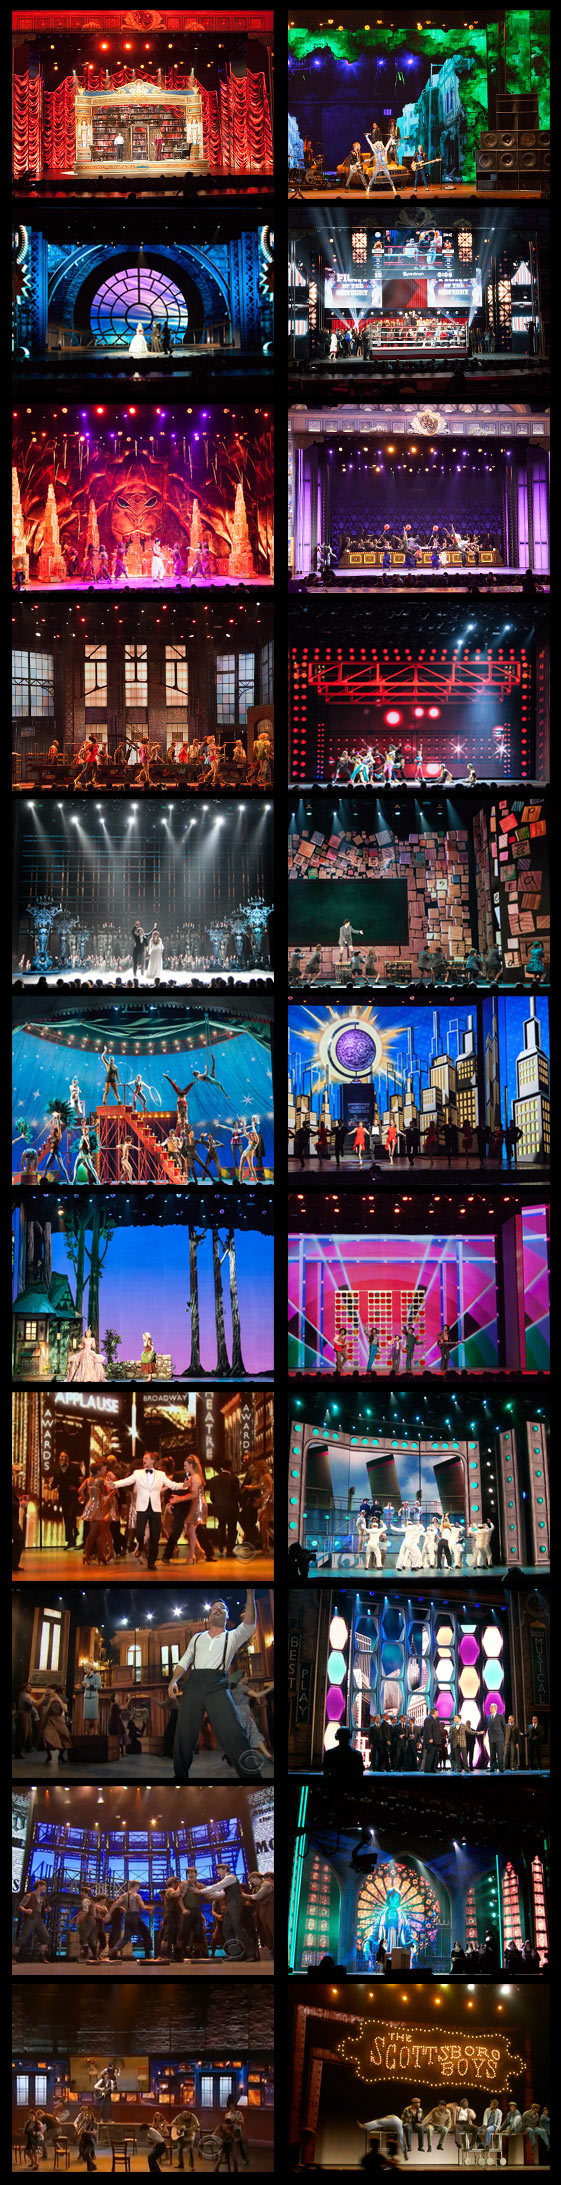 Digital sets for the Tony Awards, 2011-2015